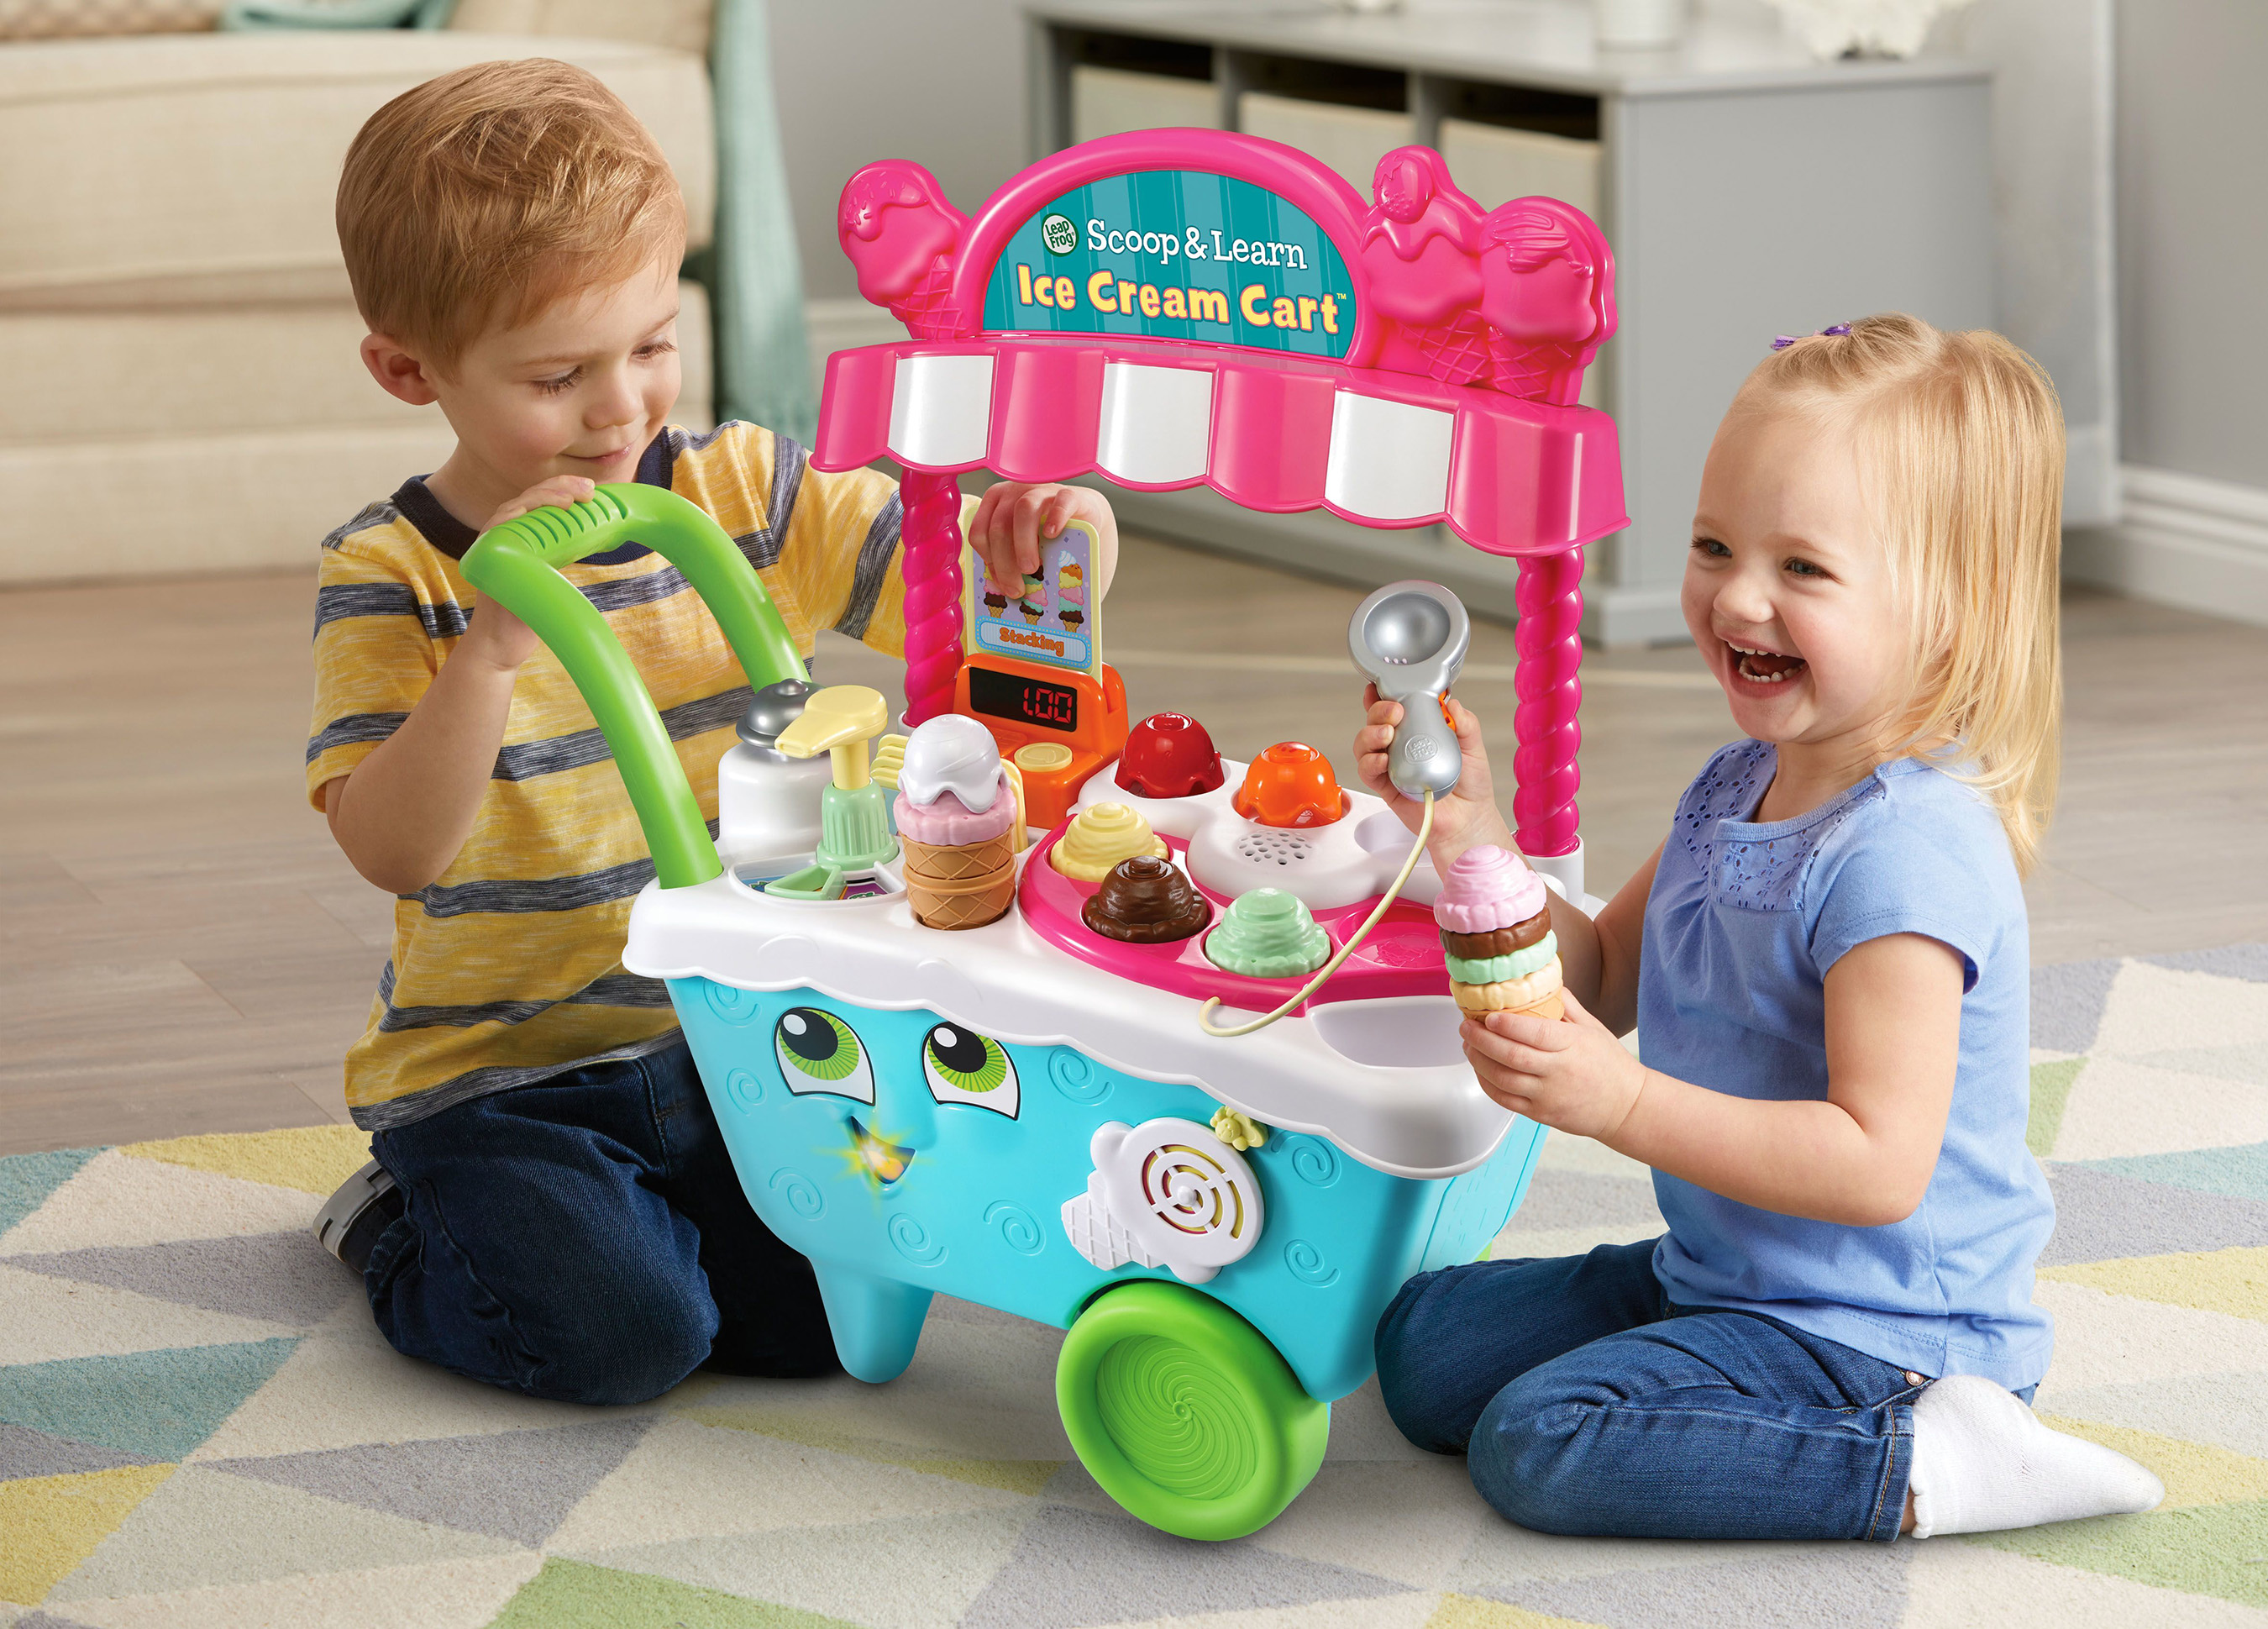 Preschool Learning Toys : Leapfrog introduces new infant and preschool learning toys